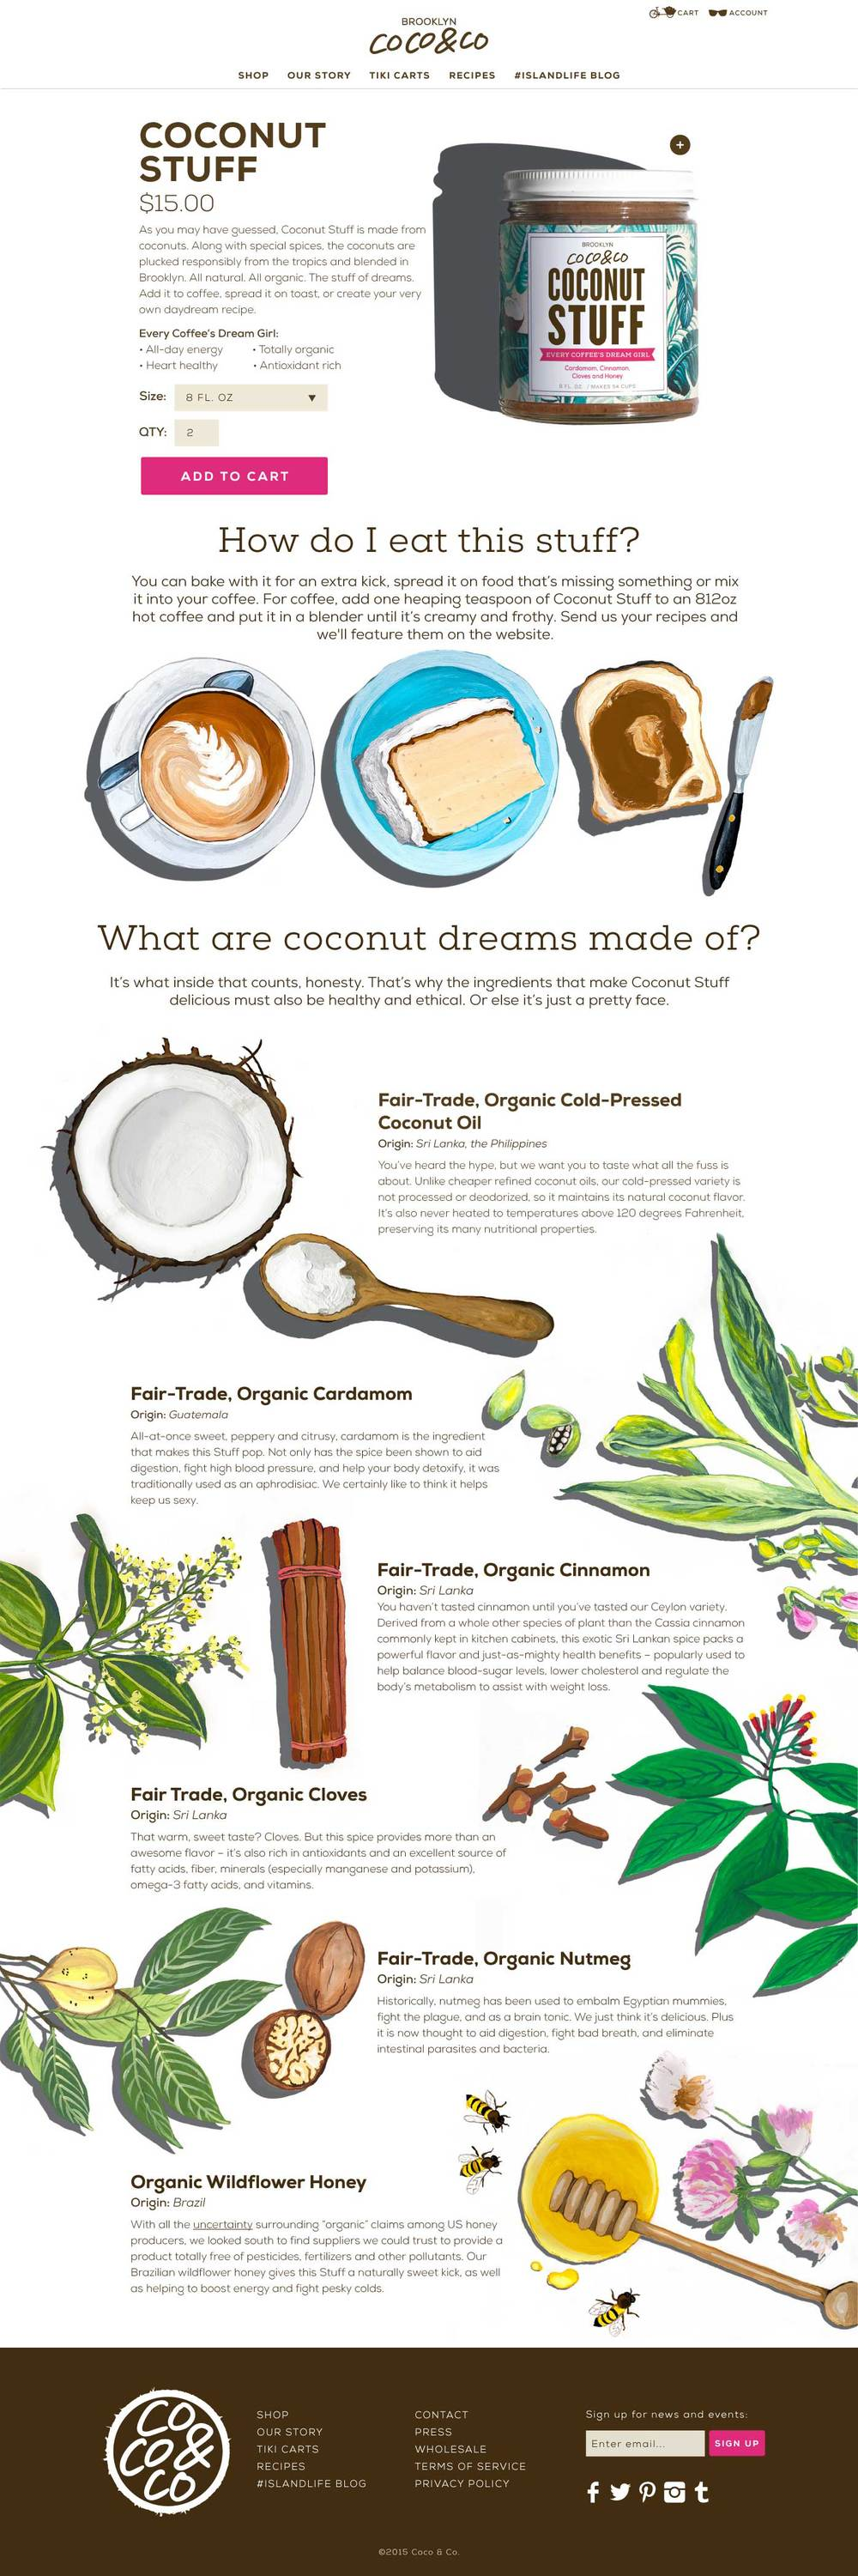 Coconut_stuff_page